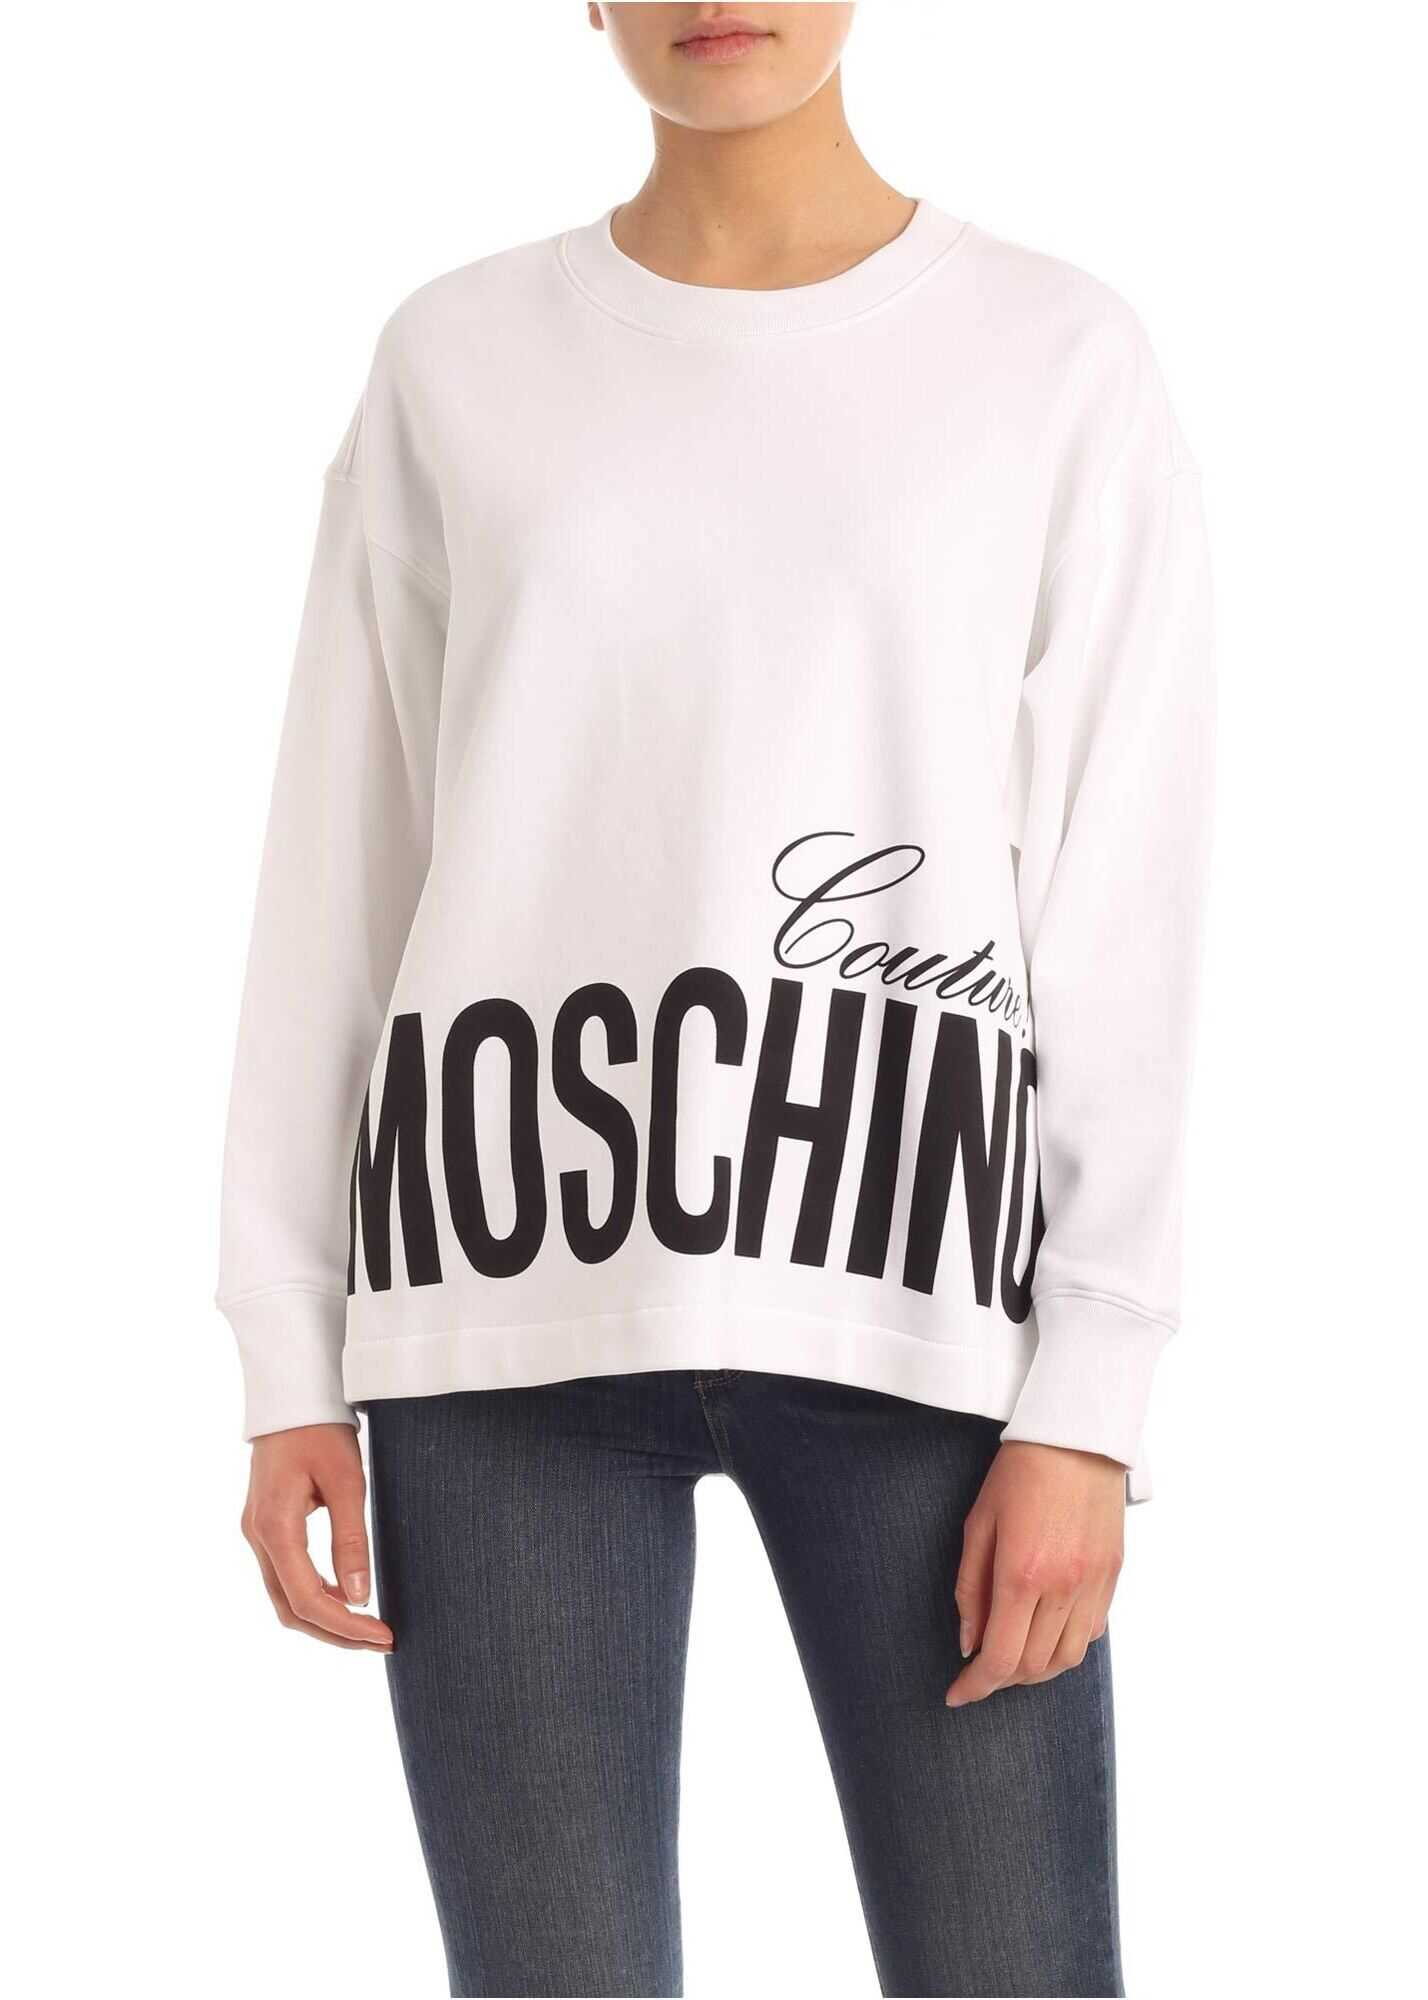 Moschino Moschino Couture Print Sweatshirt In White White